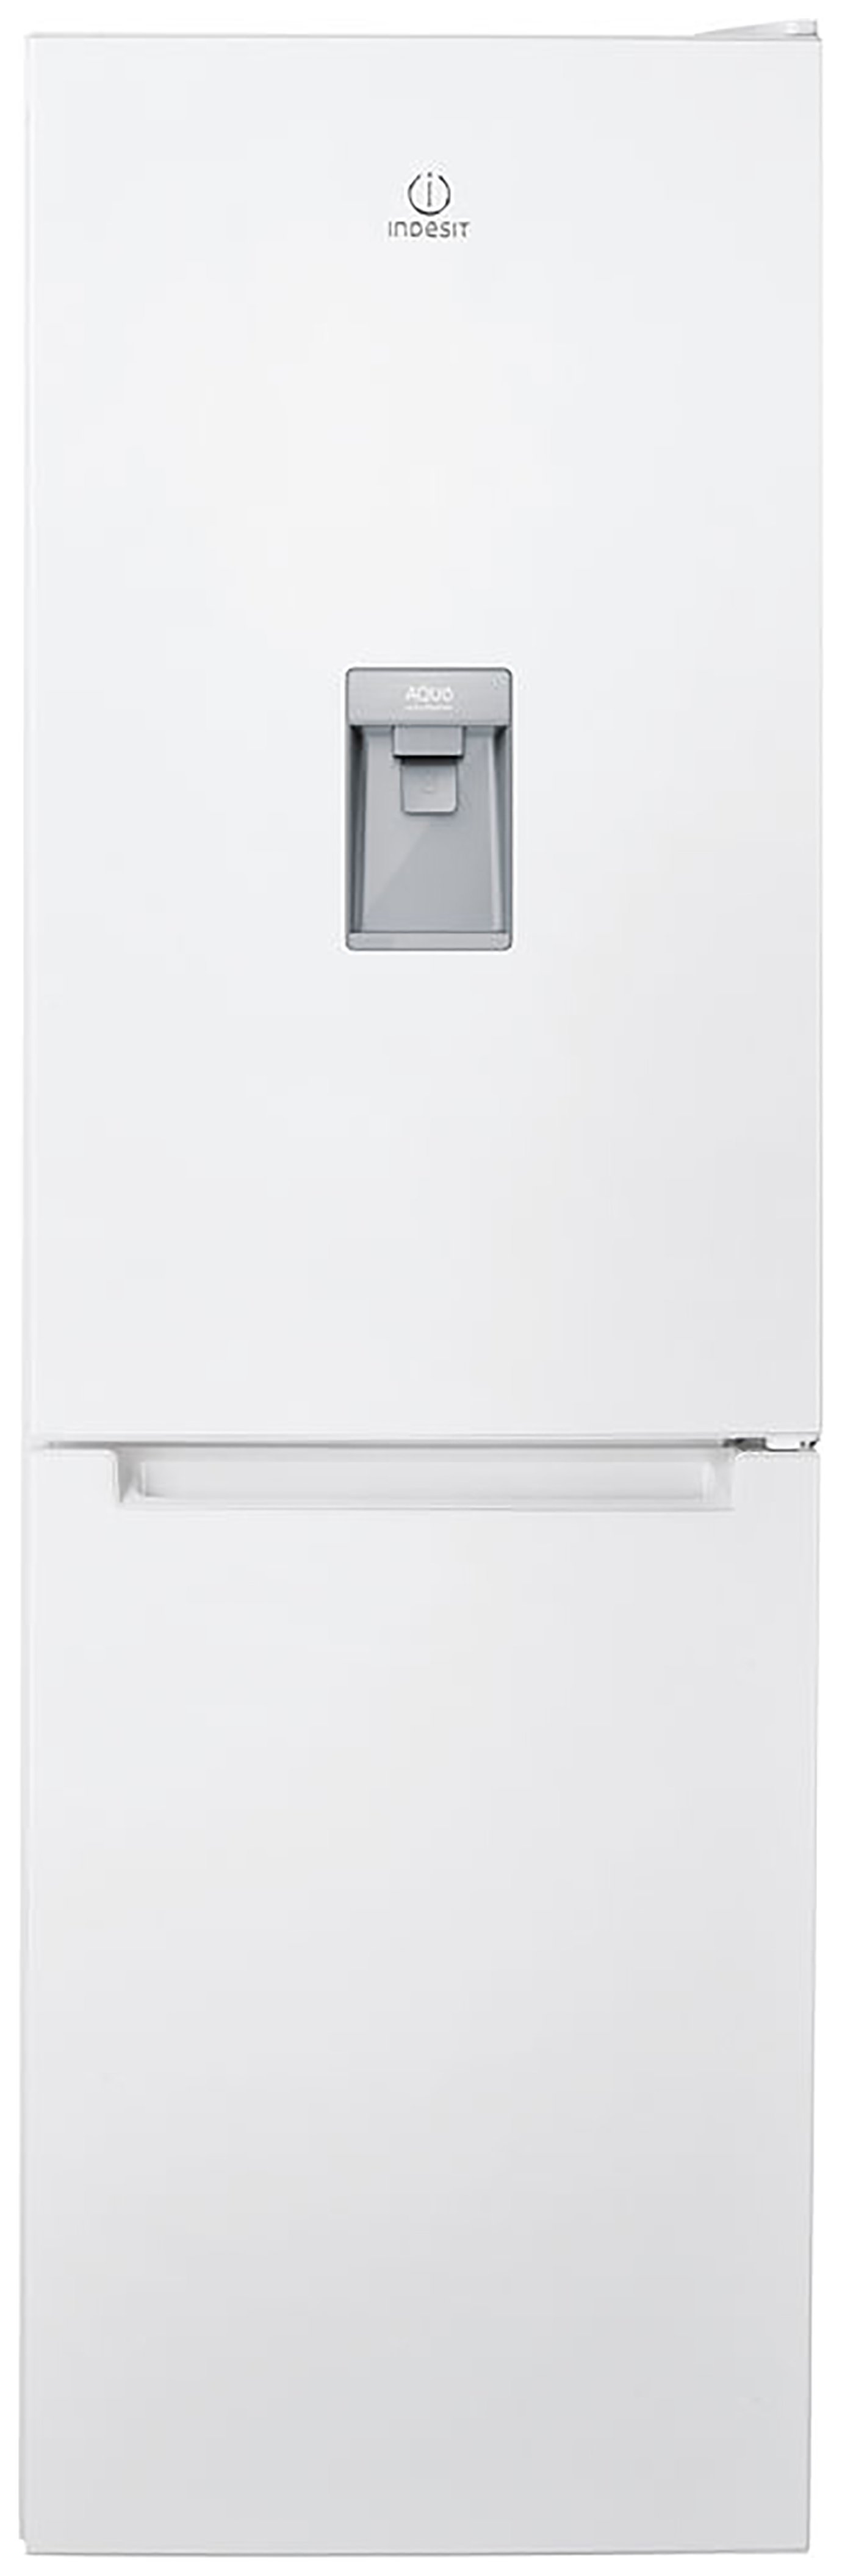 Indesit LR8 S1 W AQ Fridge Freezer - White Best Price and Cheapest